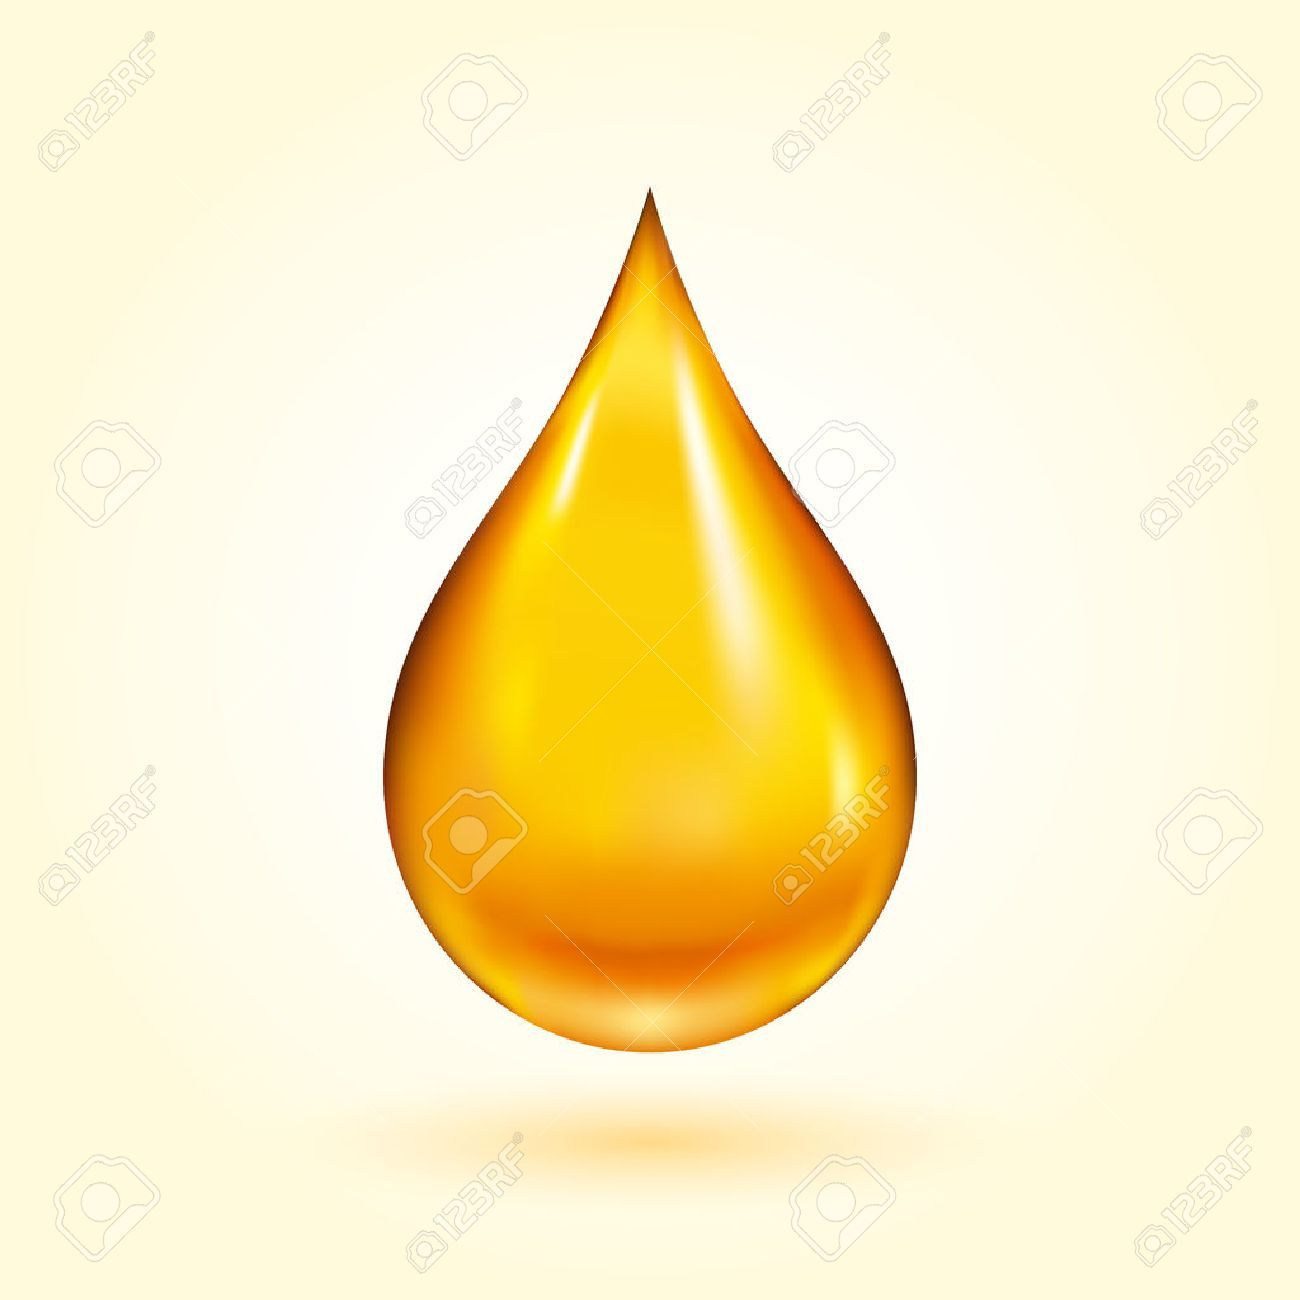 Oil drop clipart png library Oil drop clipart 4 » Clipart Portal png library